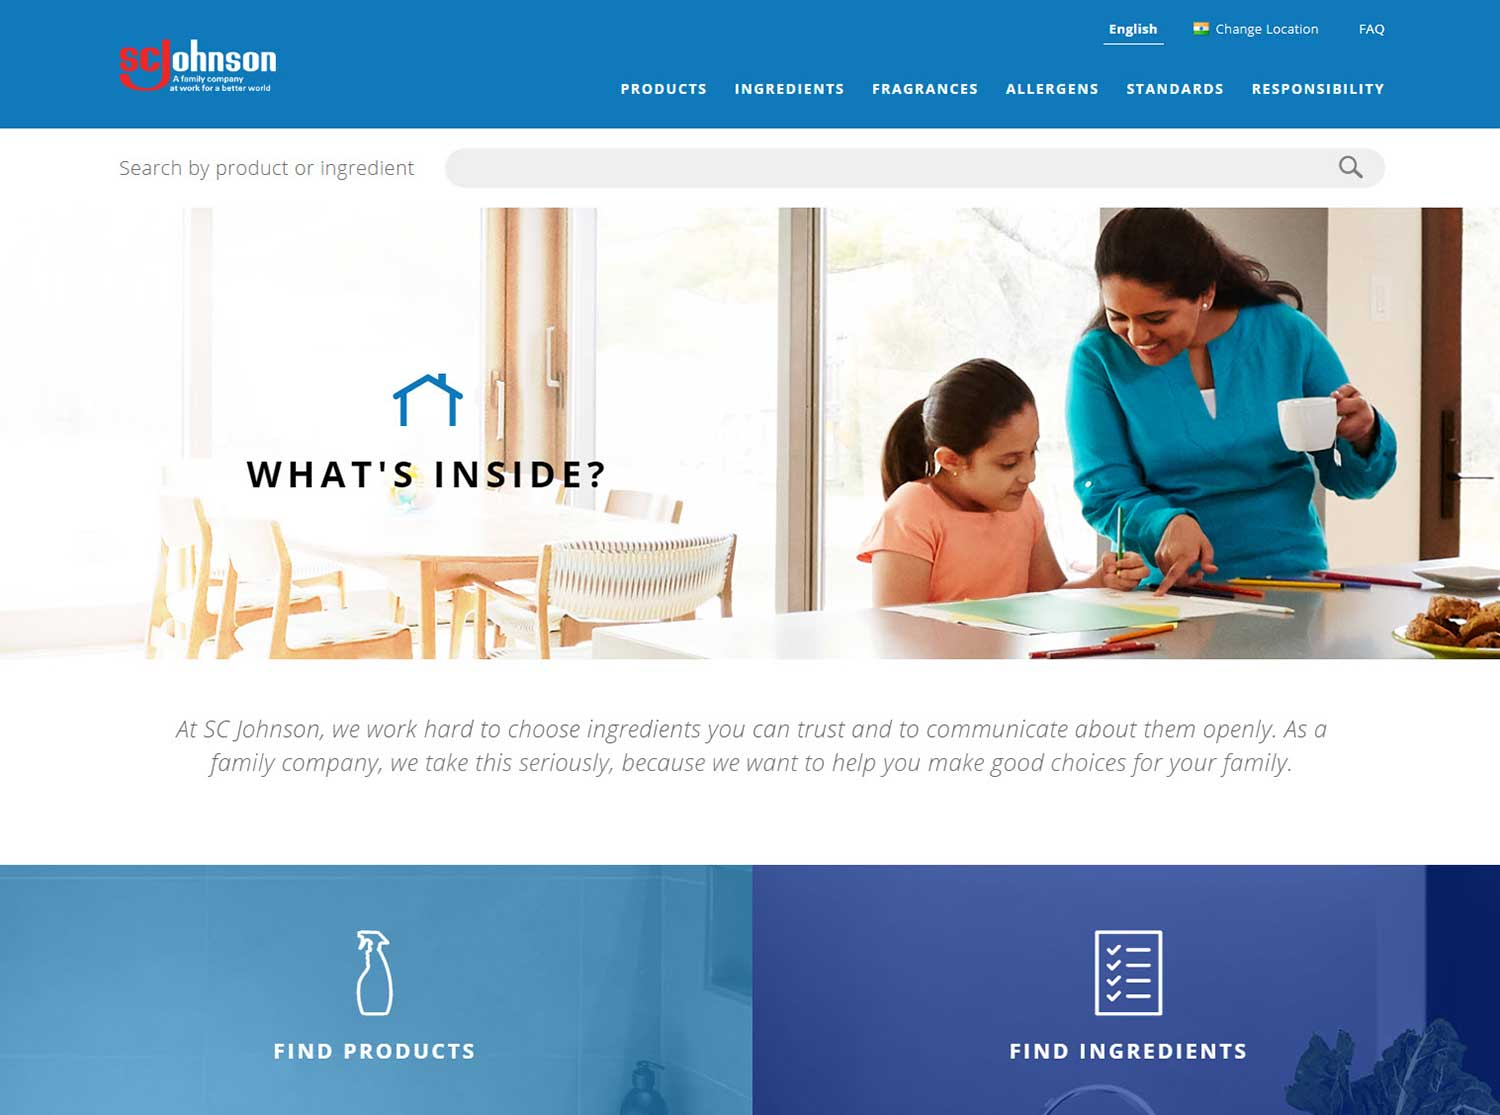 SC Johnson product ingredient site home page